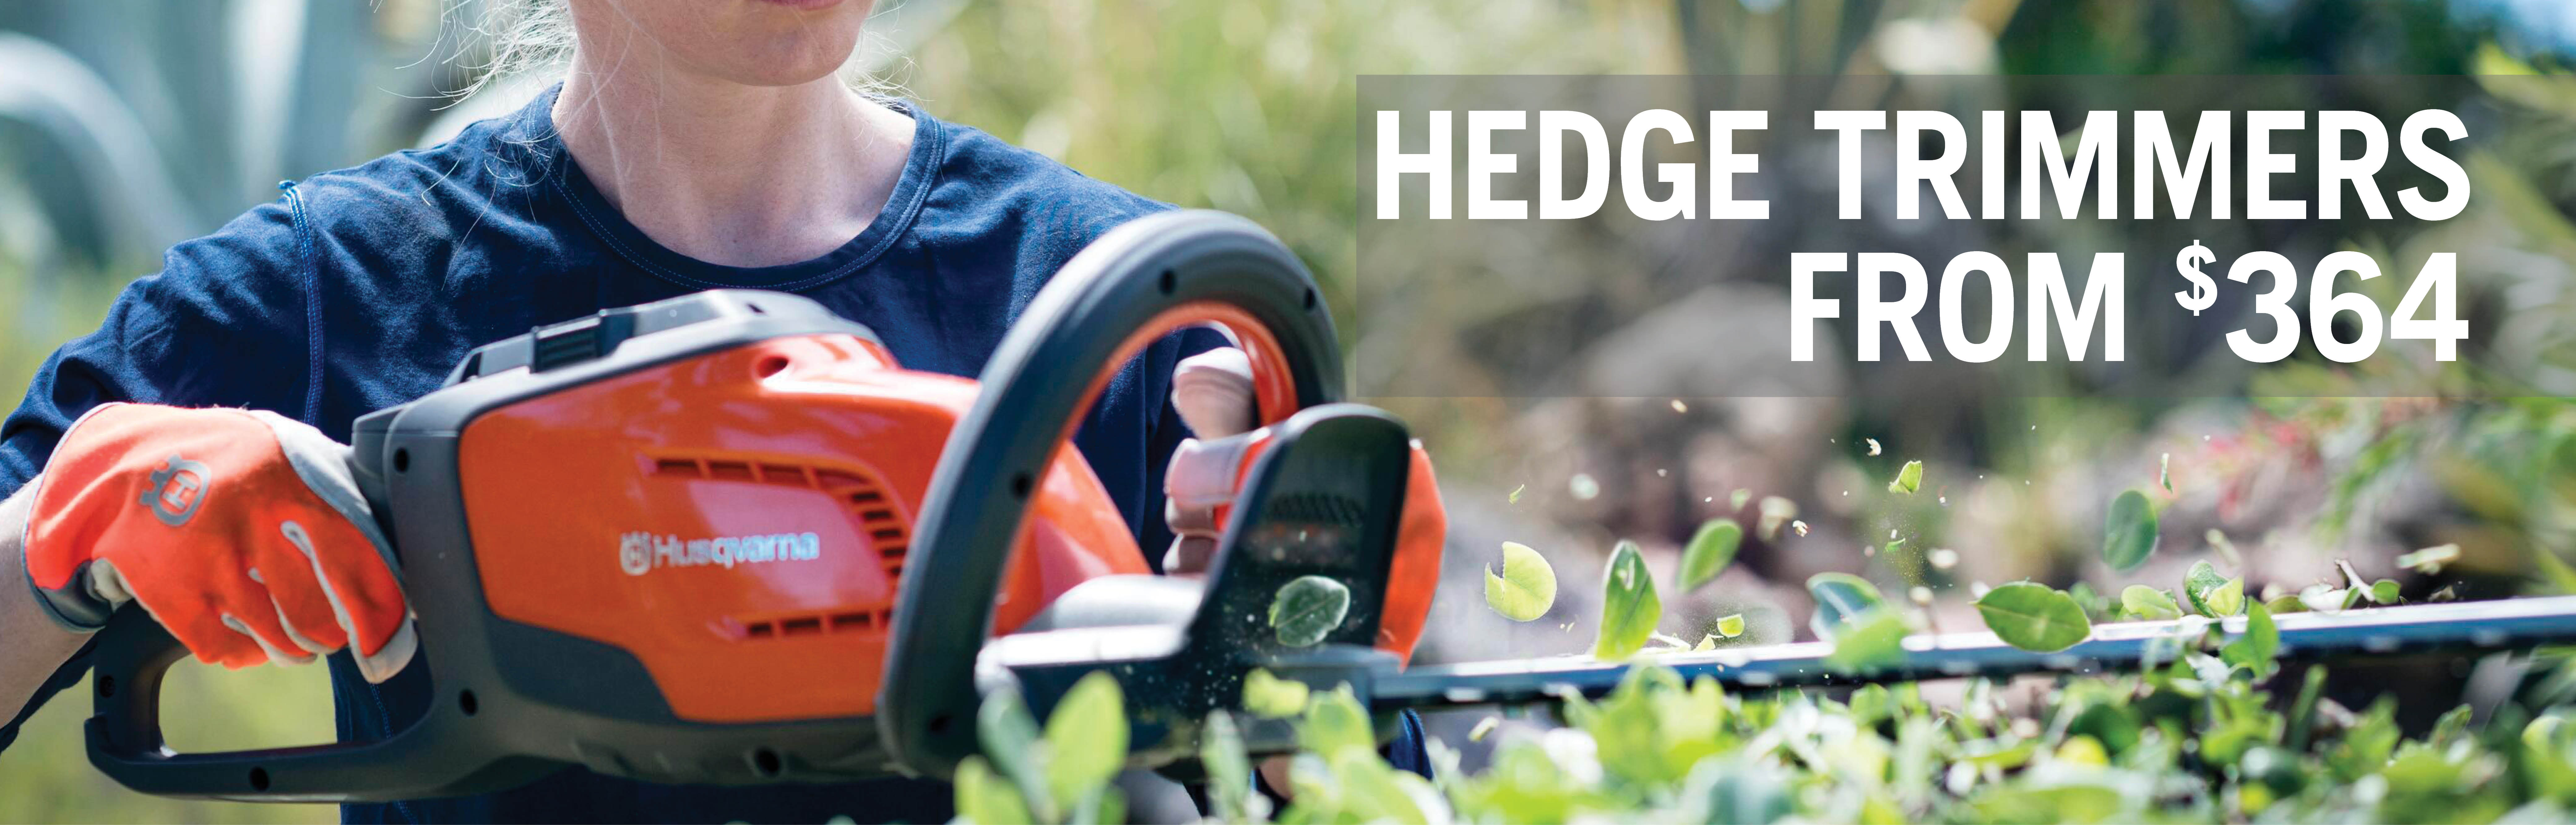 Spring 2020 - Hedge Trimmers